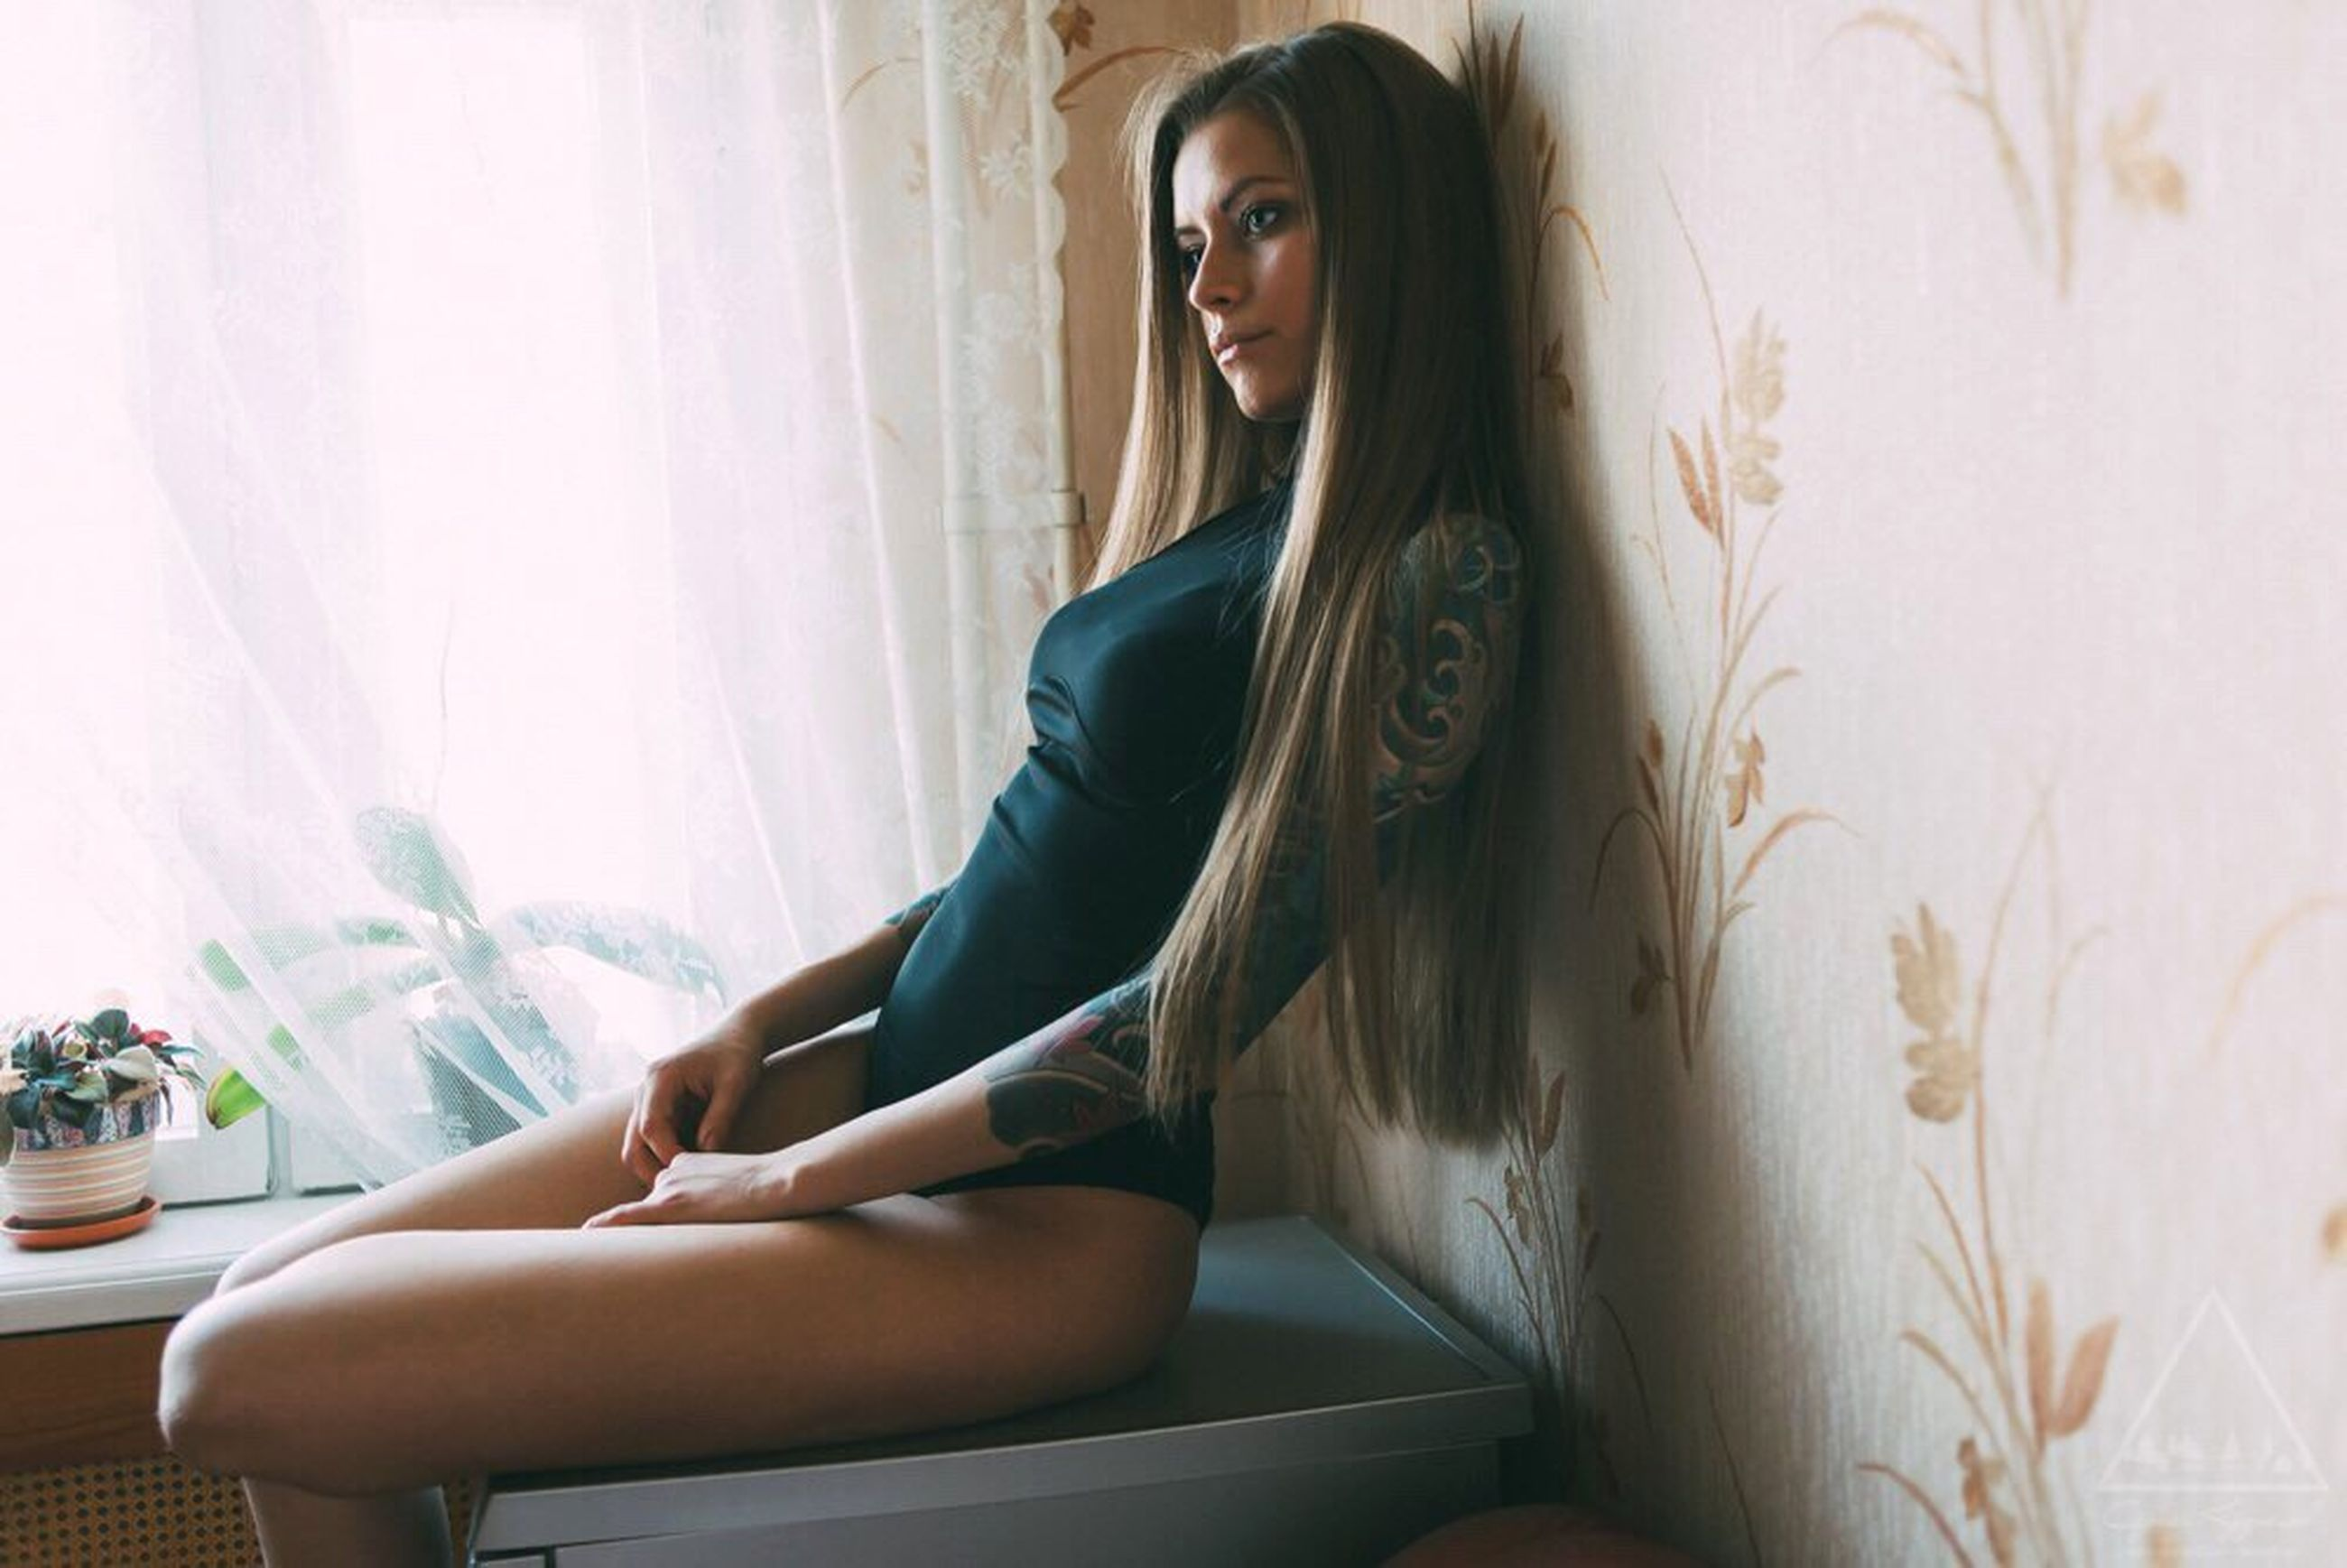 young adult, young women, indoors, sensuality, long hair, person, lifestyles, femininity, beauty, casual clothing, fashion, front view, seduction, portrait, looking at camera, home interior, seductive women